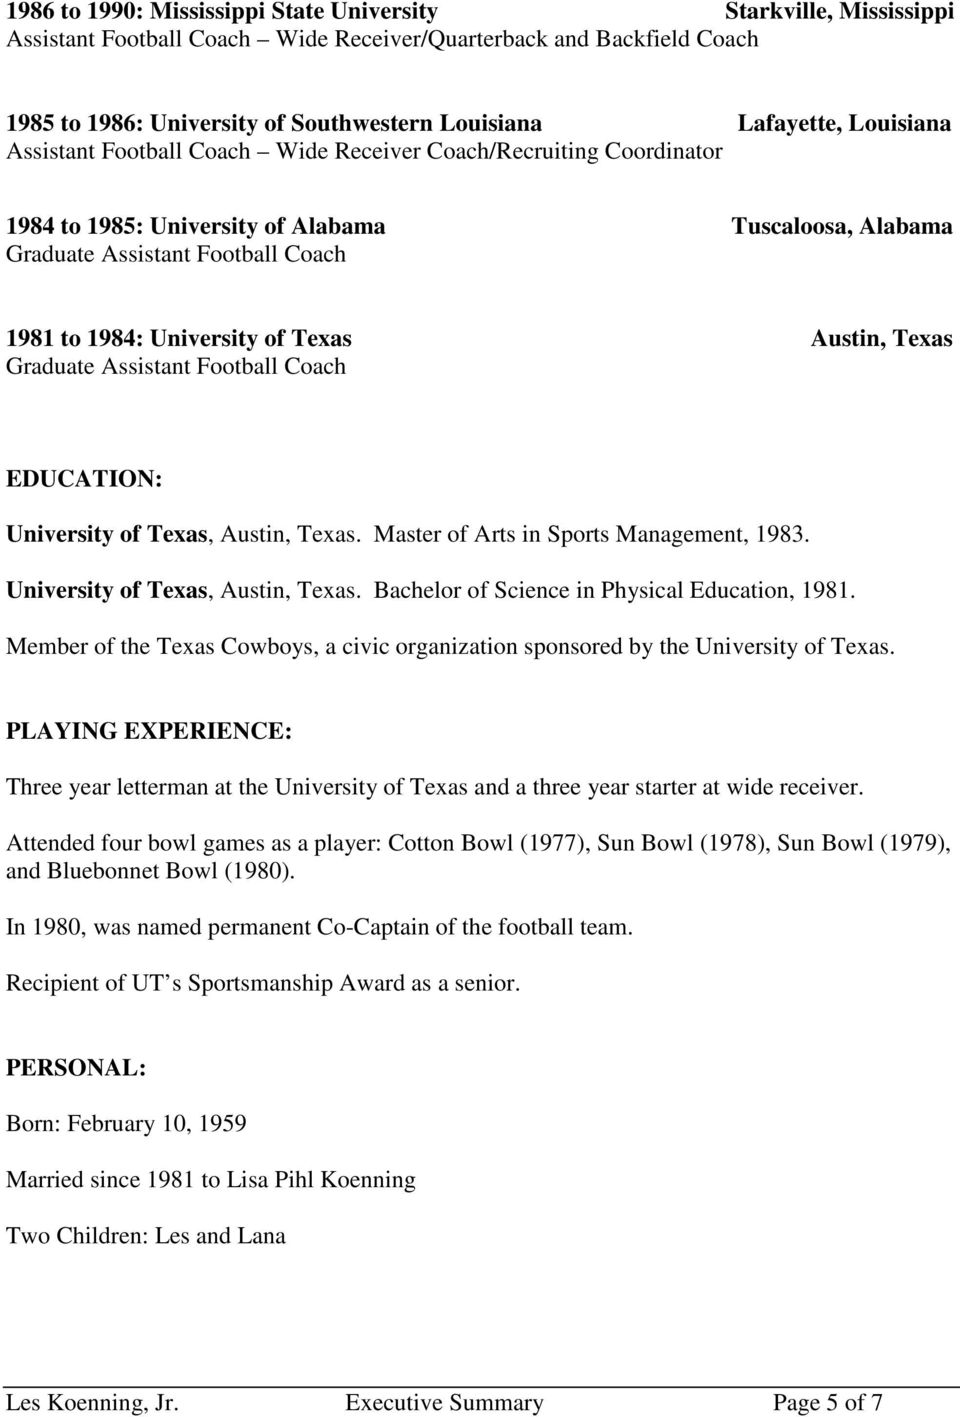 Texas Austin, Texas Graduate Assistant Football Coach EDUCATION: University of Texas, Austin, Texas. Master of Arts in Sports Management, 1983. University of Texas, Austin, Texas. Bachelor of Science in Physical Education, 1981.